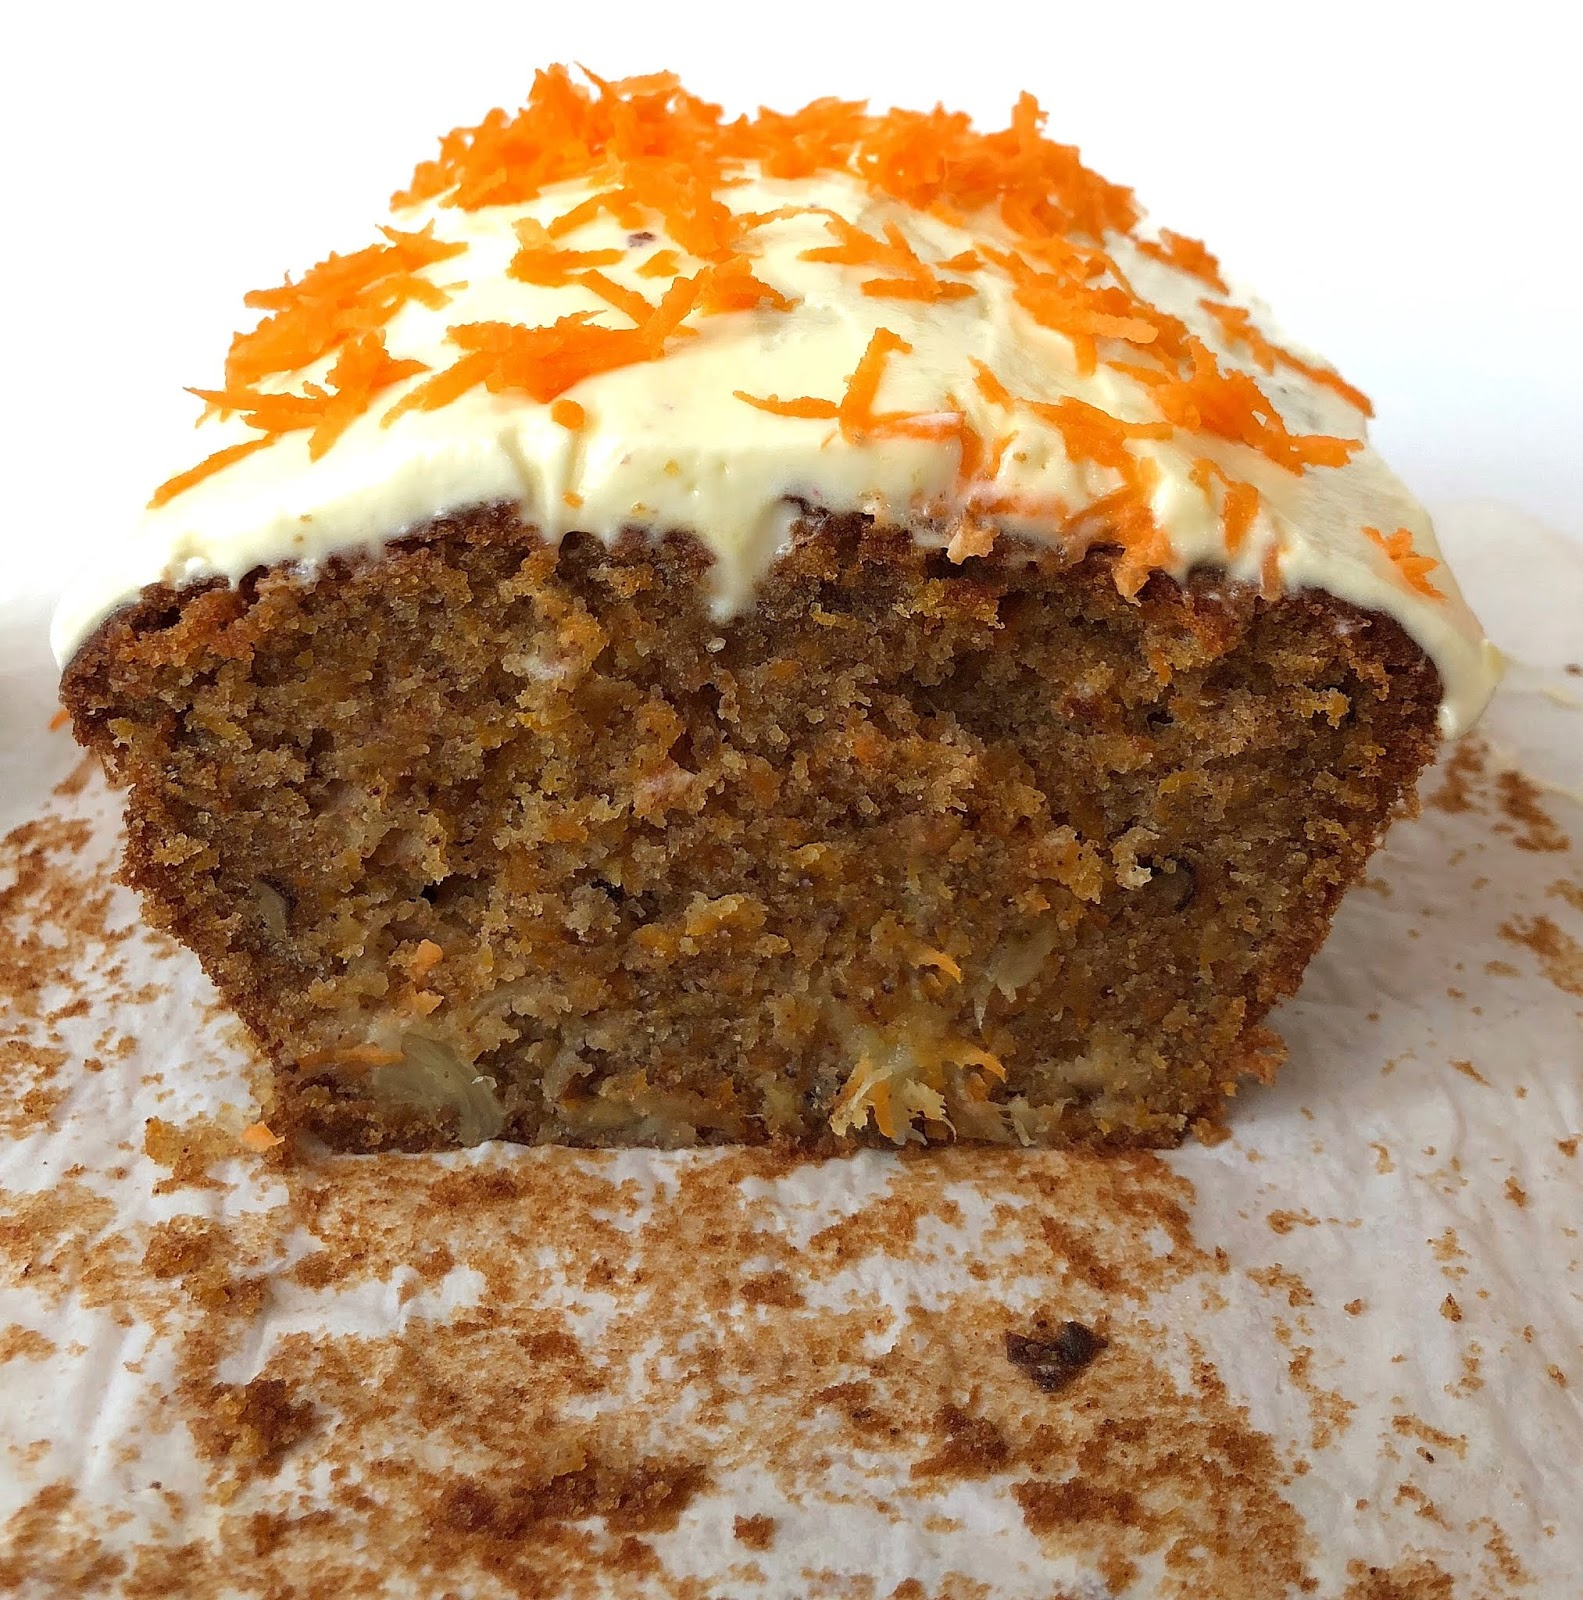 Moist Carrot Cake with walnuts and pineapple bits